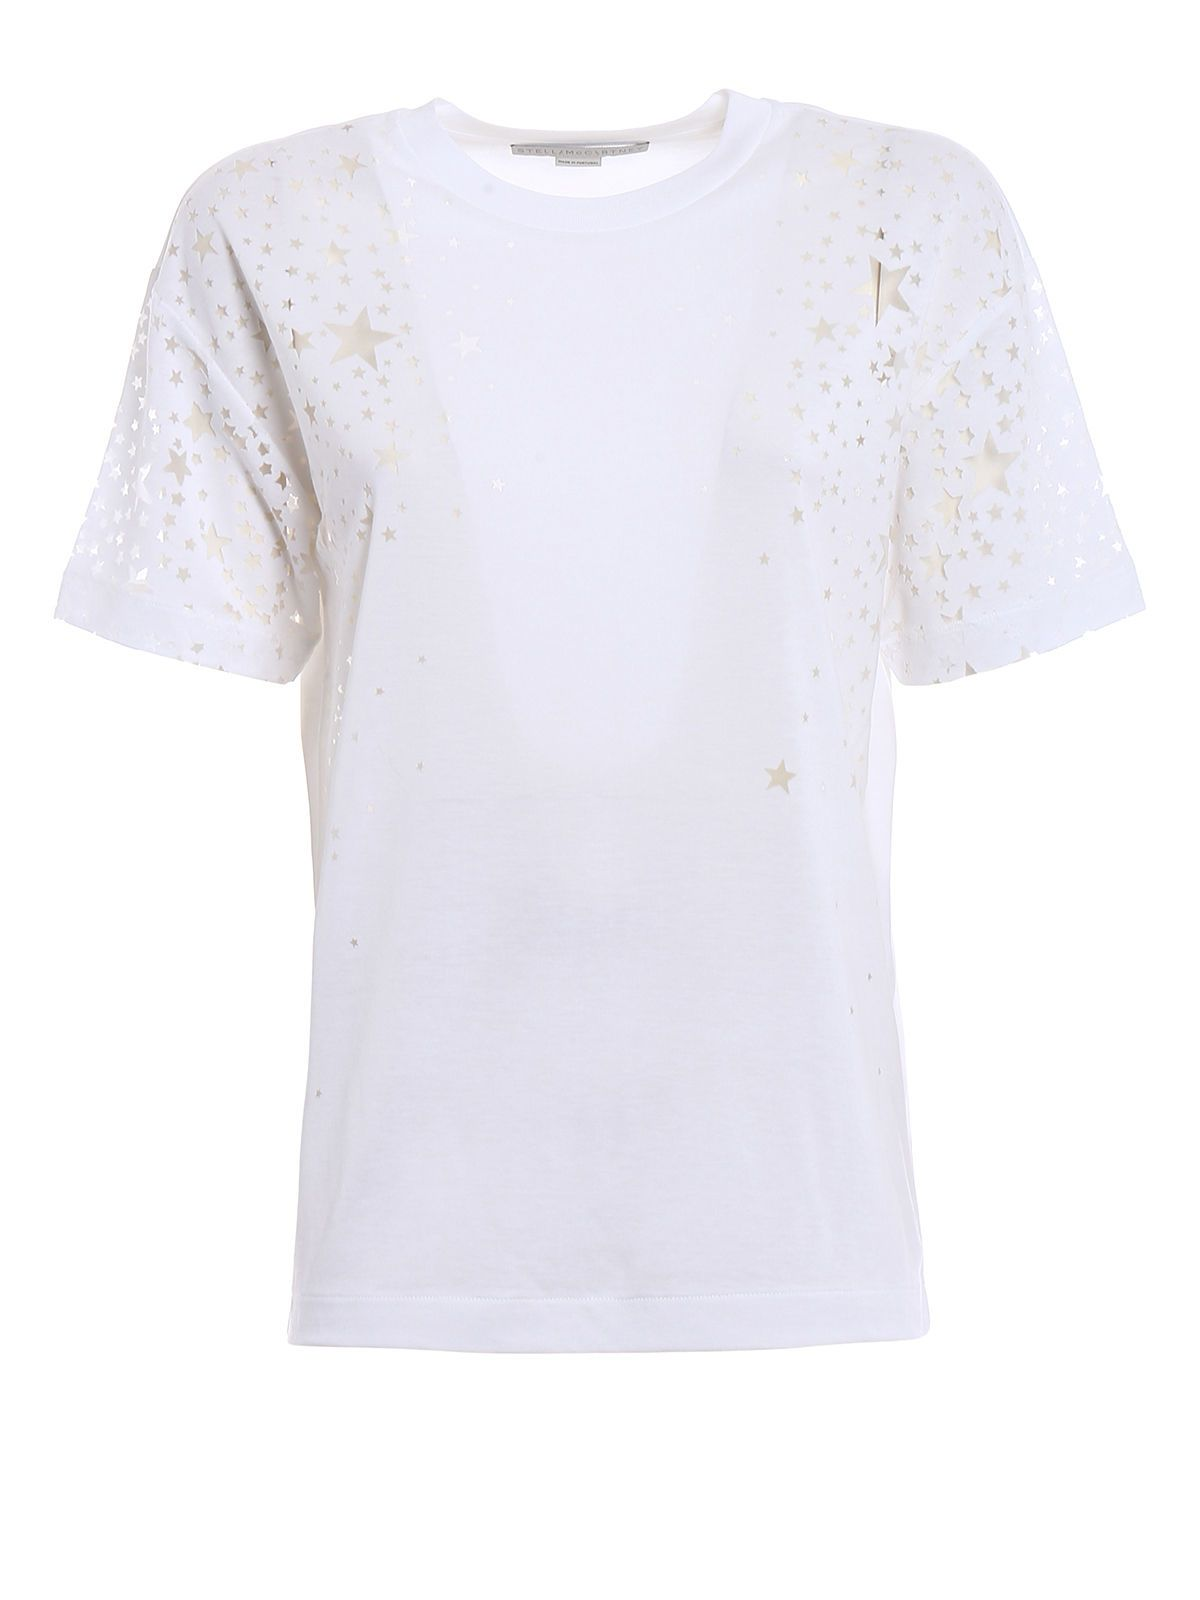 Outlet Authentic Clearance Best basic T-shirt - White Stella McCartney Perfect Enjoy Sale Online uoqmvm3CRf